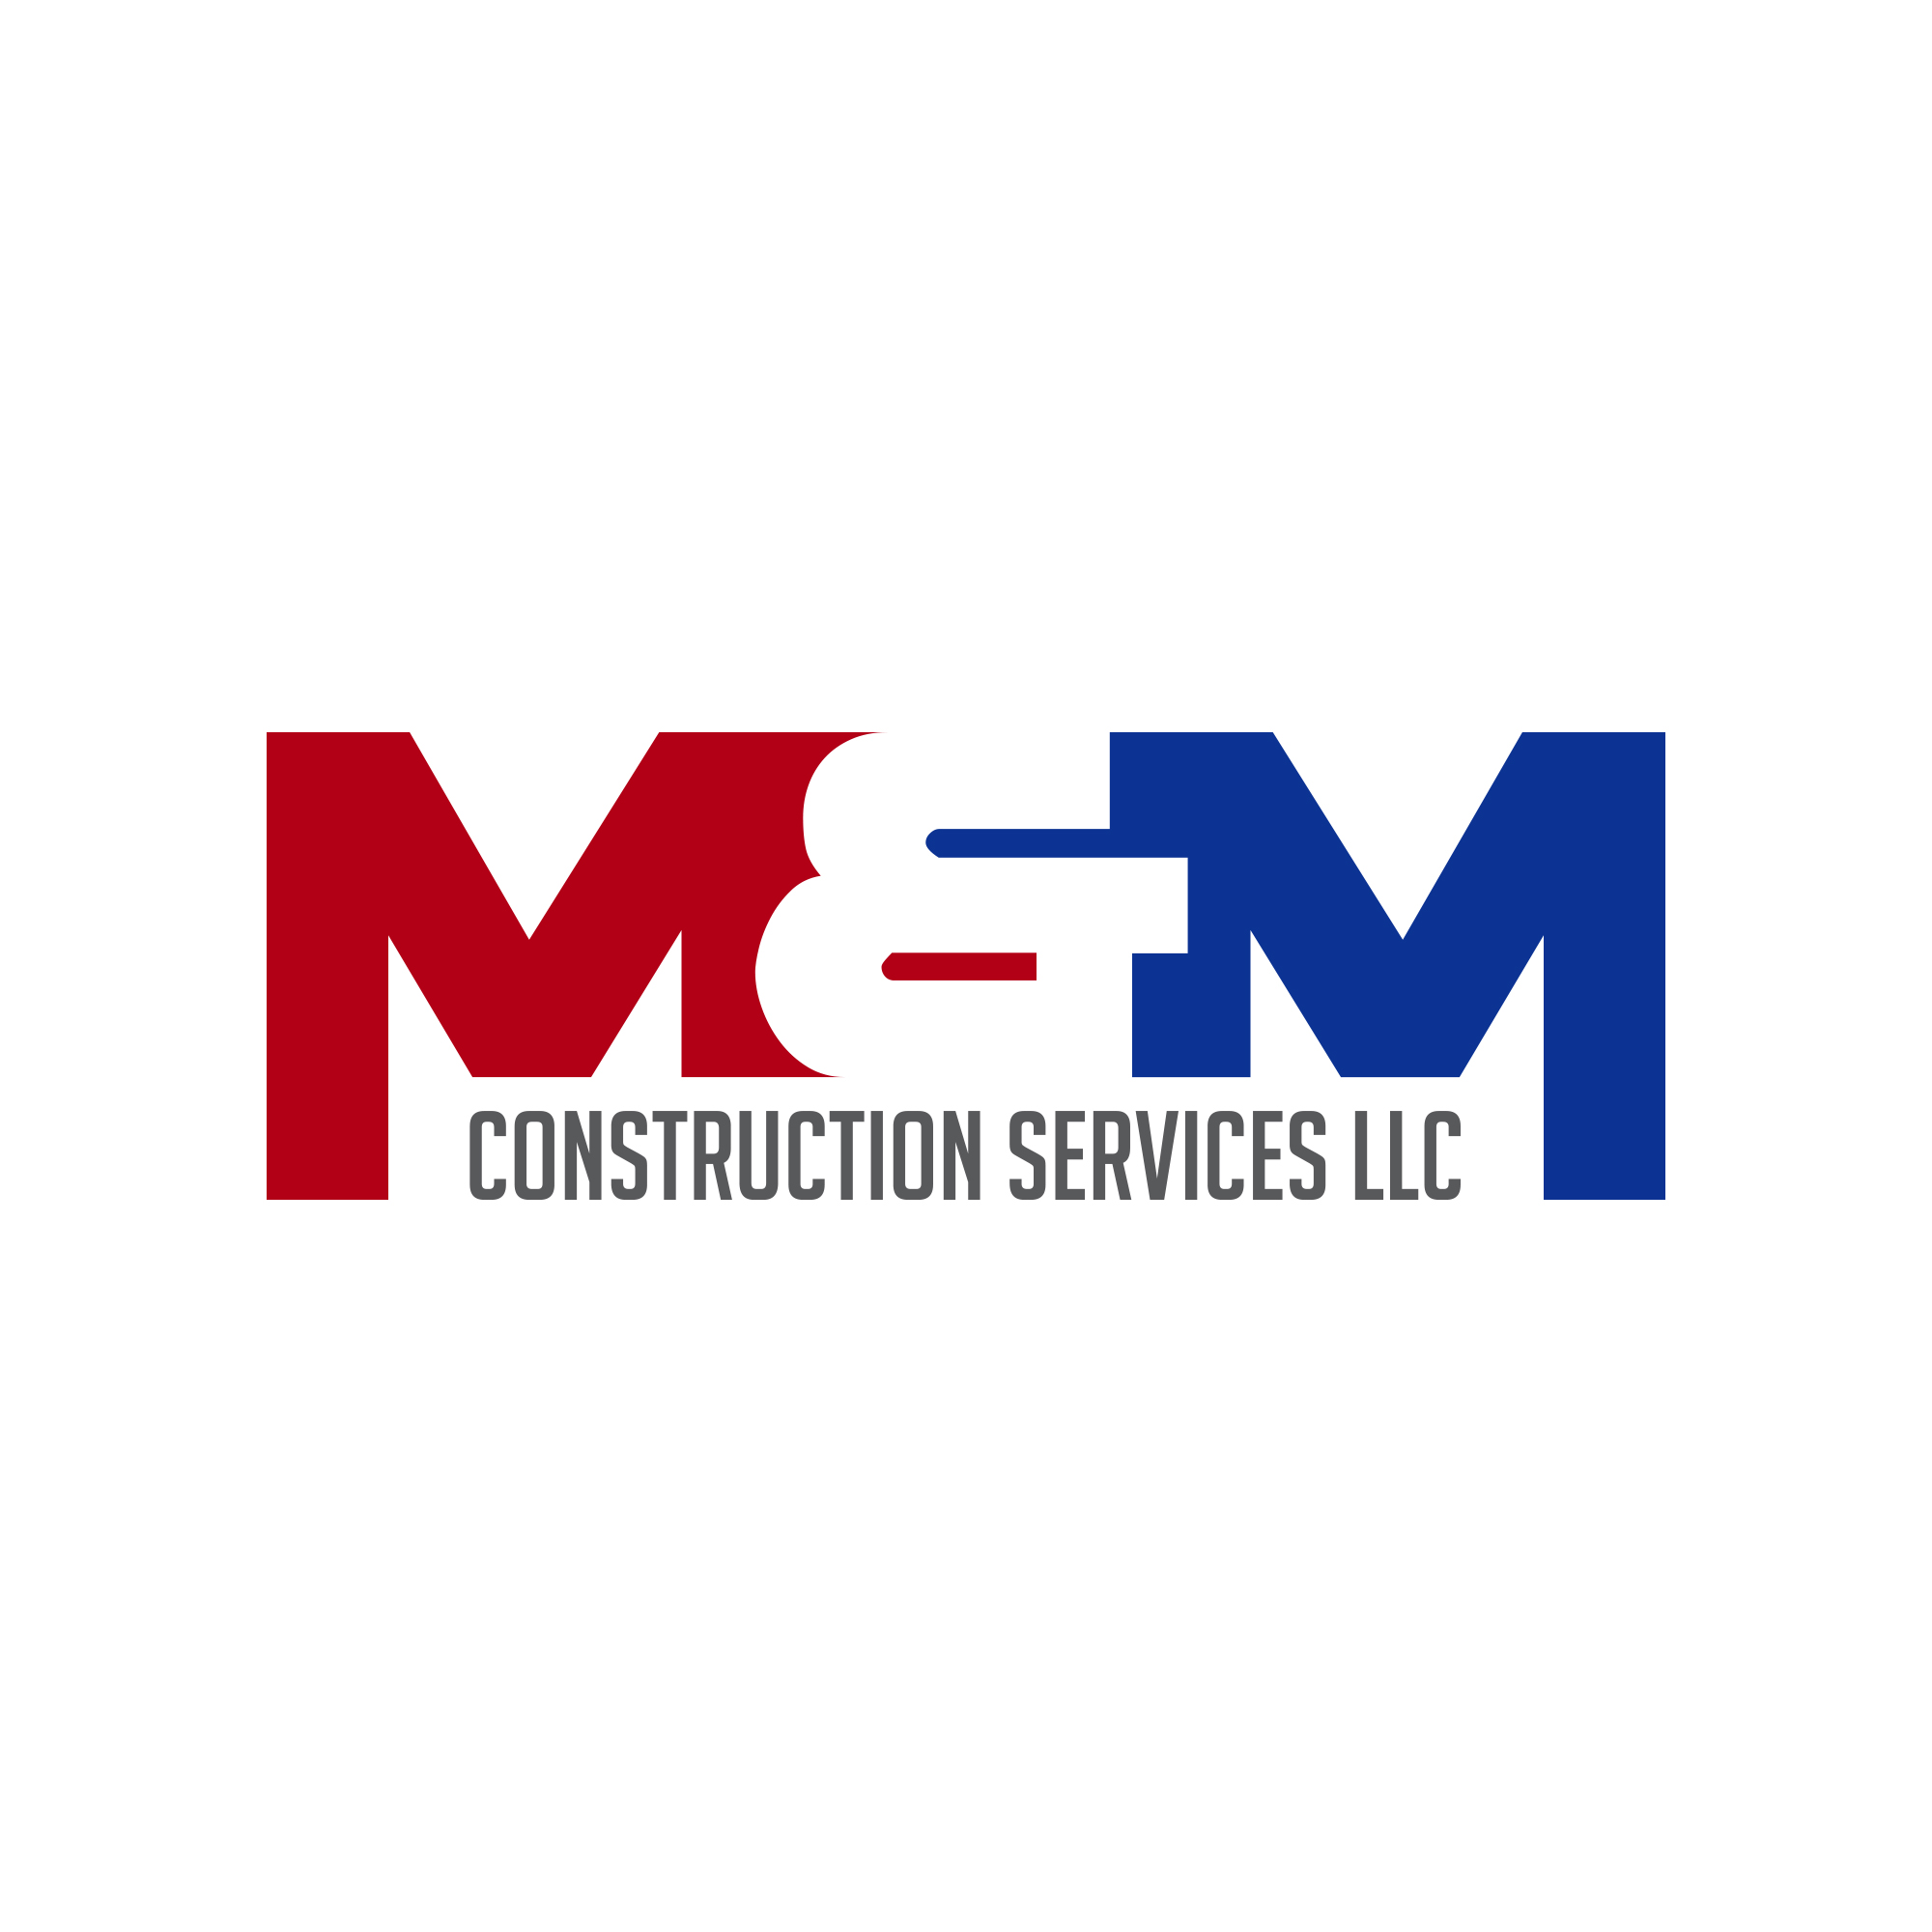 M&M Construction Services LLC